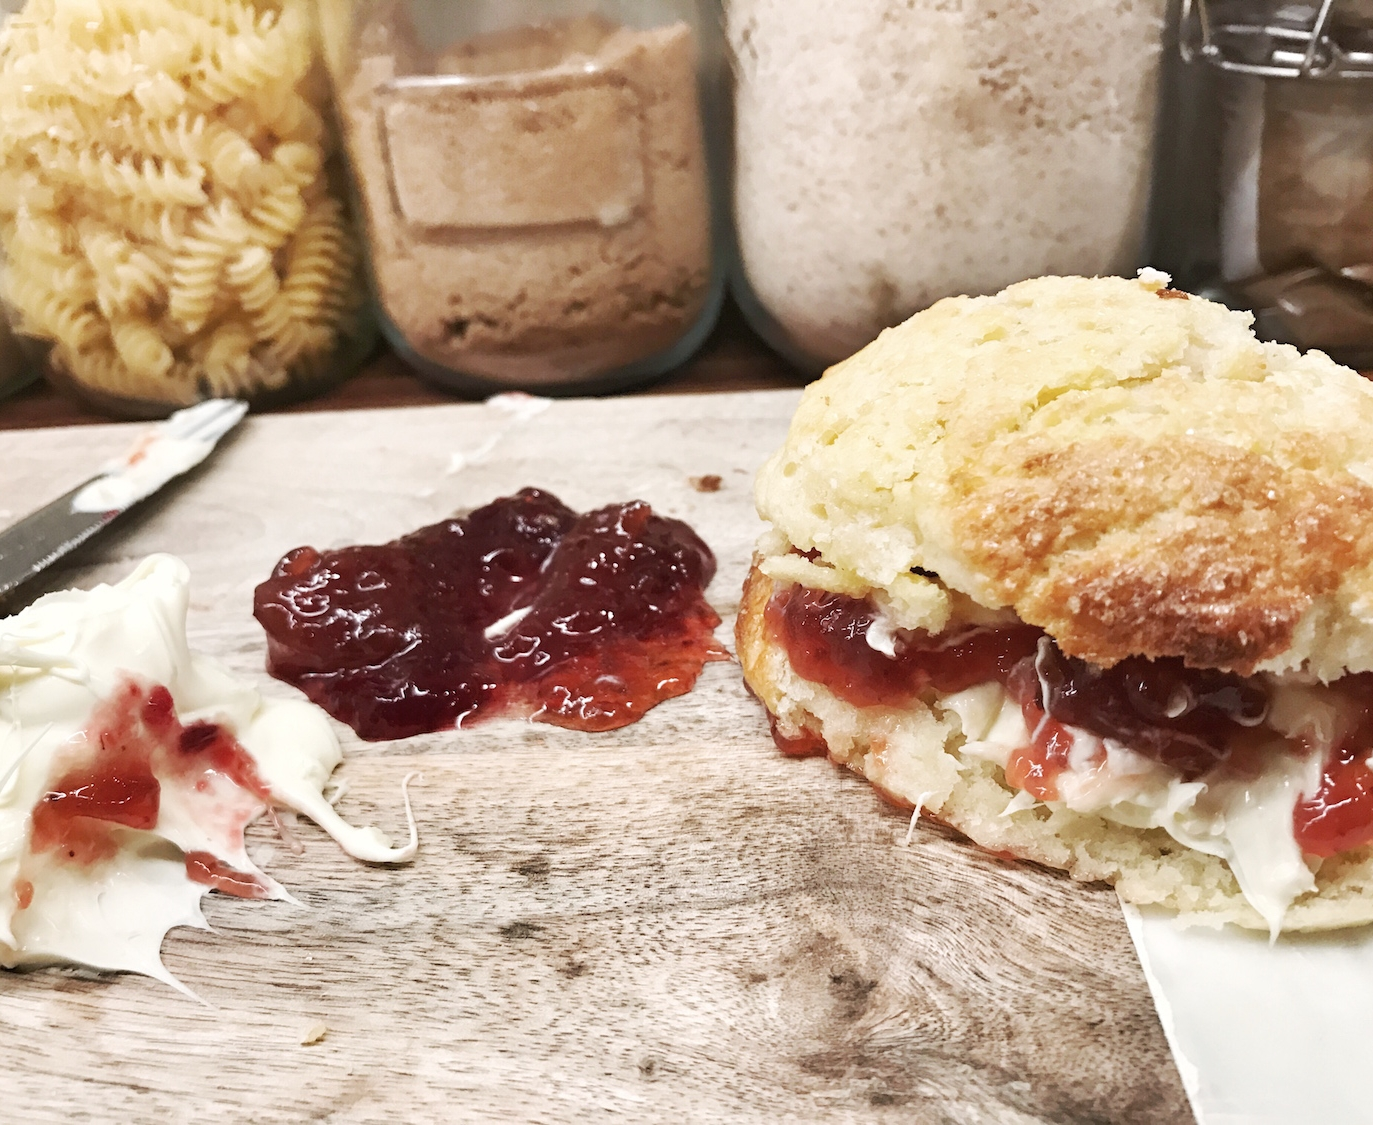 Scone with clotted cream and jam.